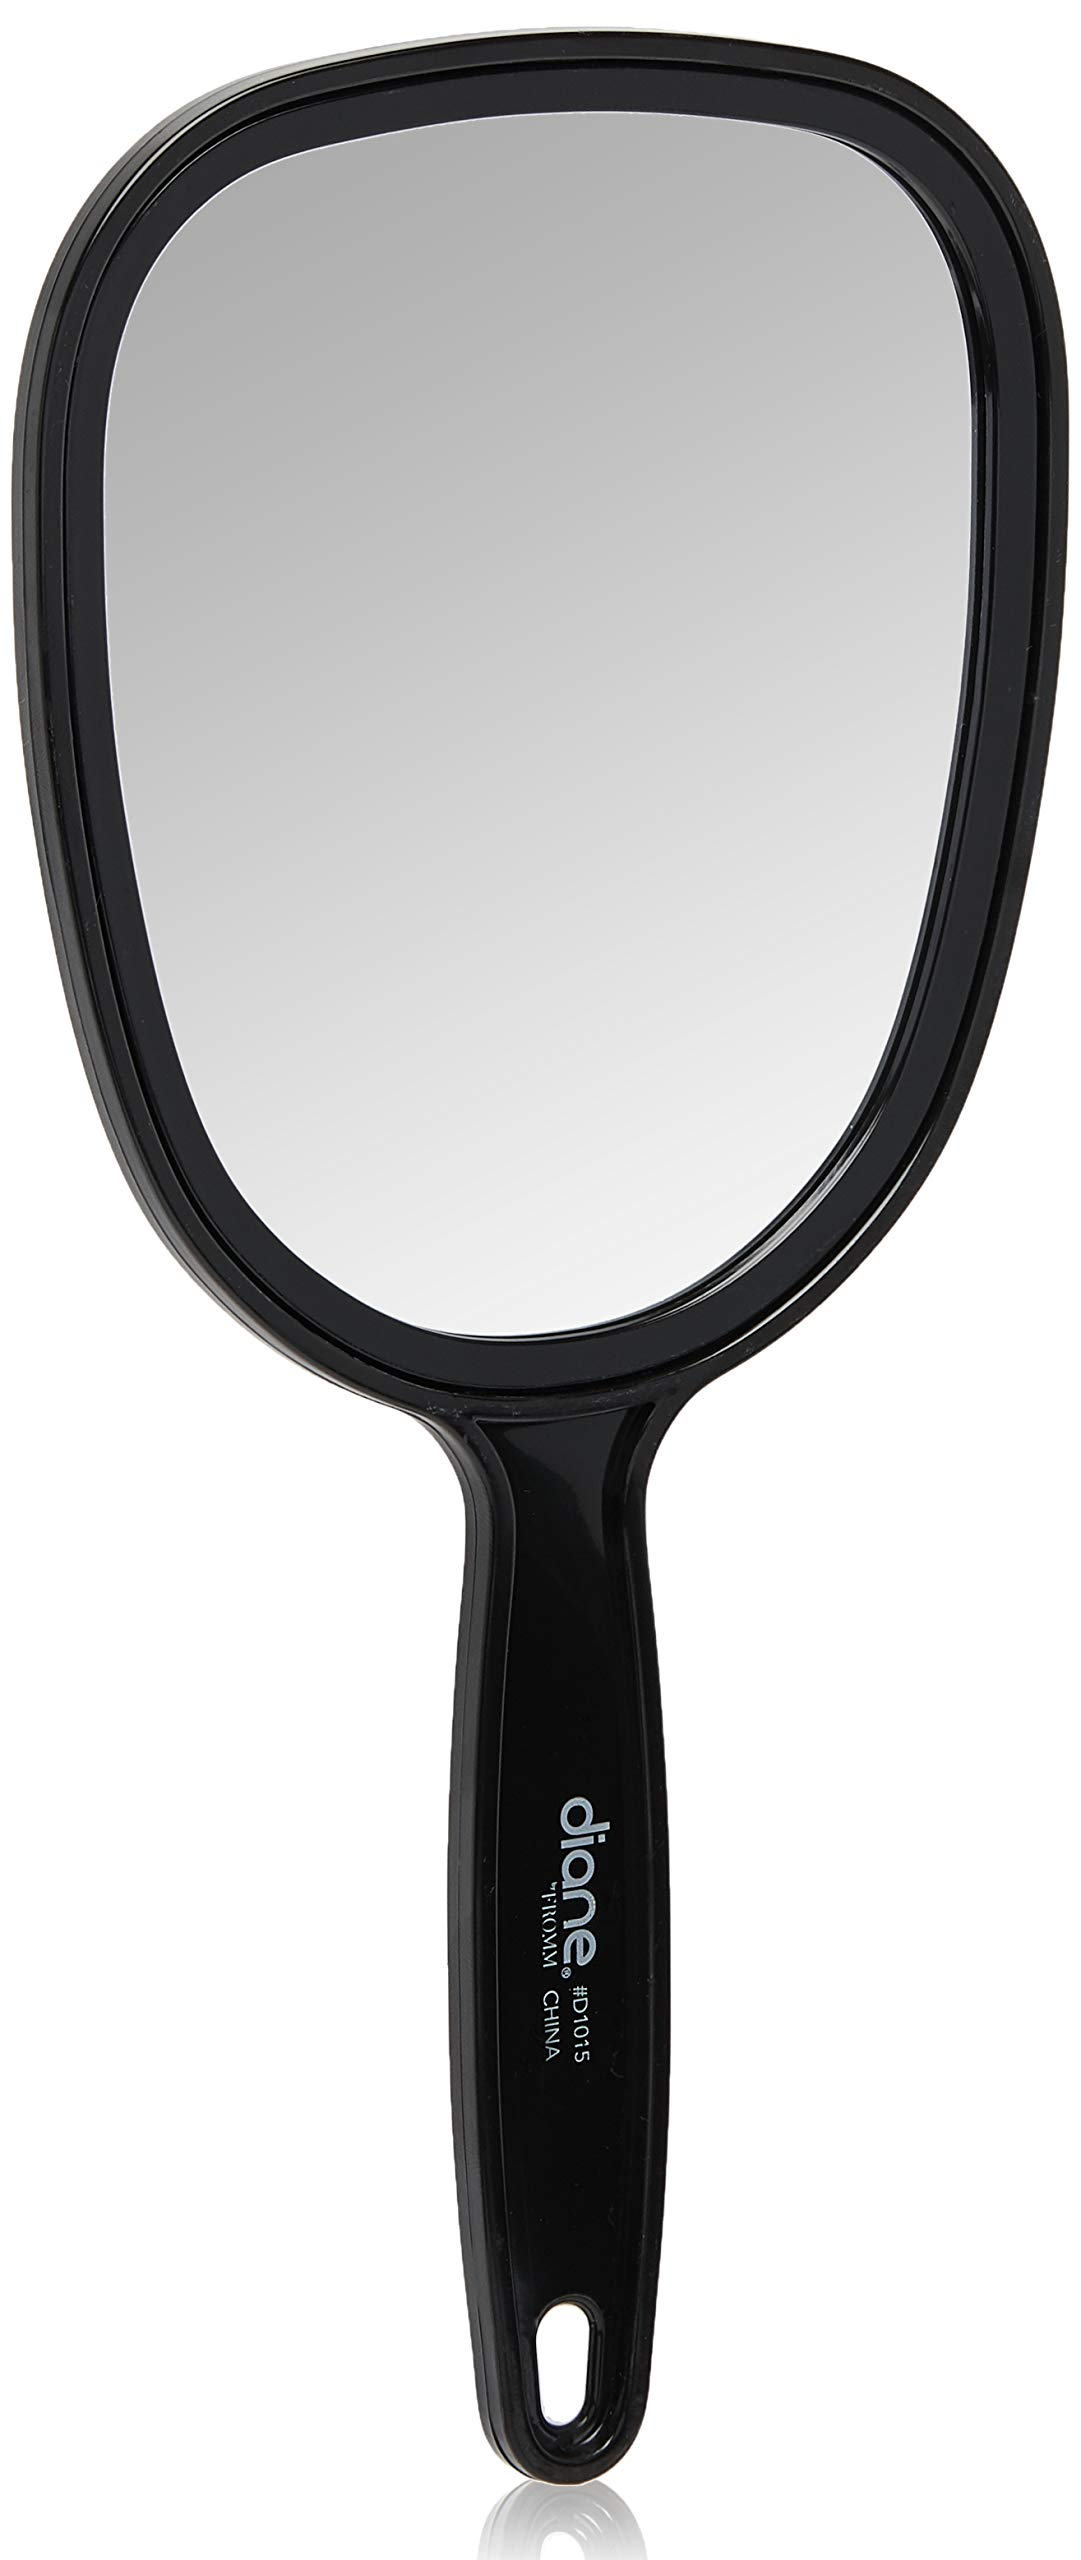 """Diane Plastic Handheld Mirror – Vanity Oval Mirror with Hanging Hole in Handle – Small Size (5"""" x 11"""") for Travel, Bathroom, Desk, Makeup, Beauty, Grooming, Shaving, D1015"""